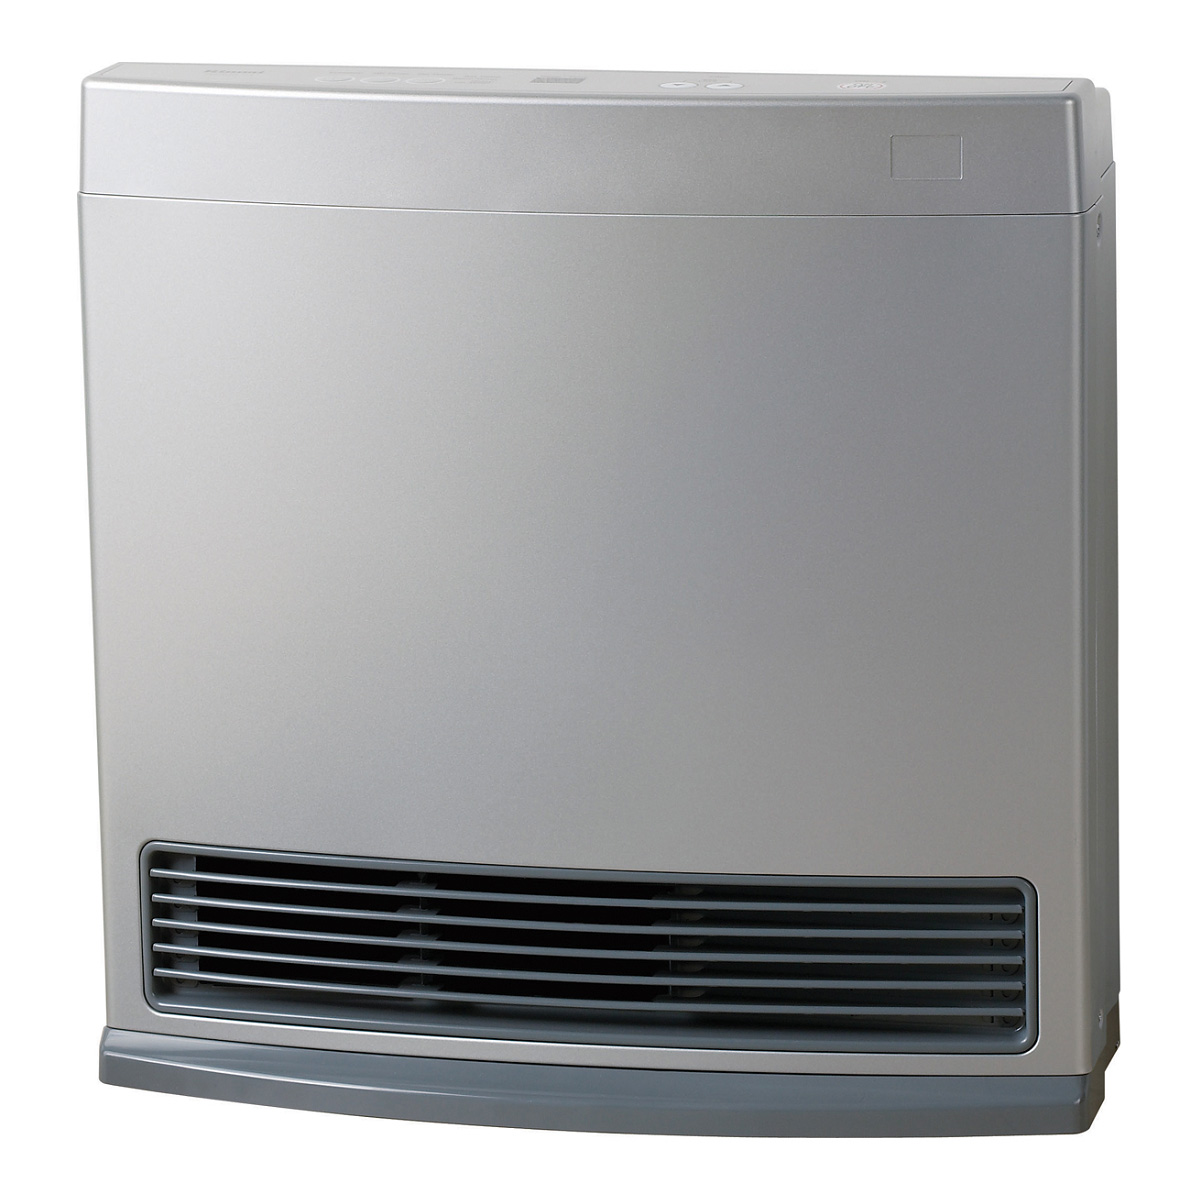 Rinnai EN13SN Enduro Unflued Natural Gas Convector Heater - Platinum Silver